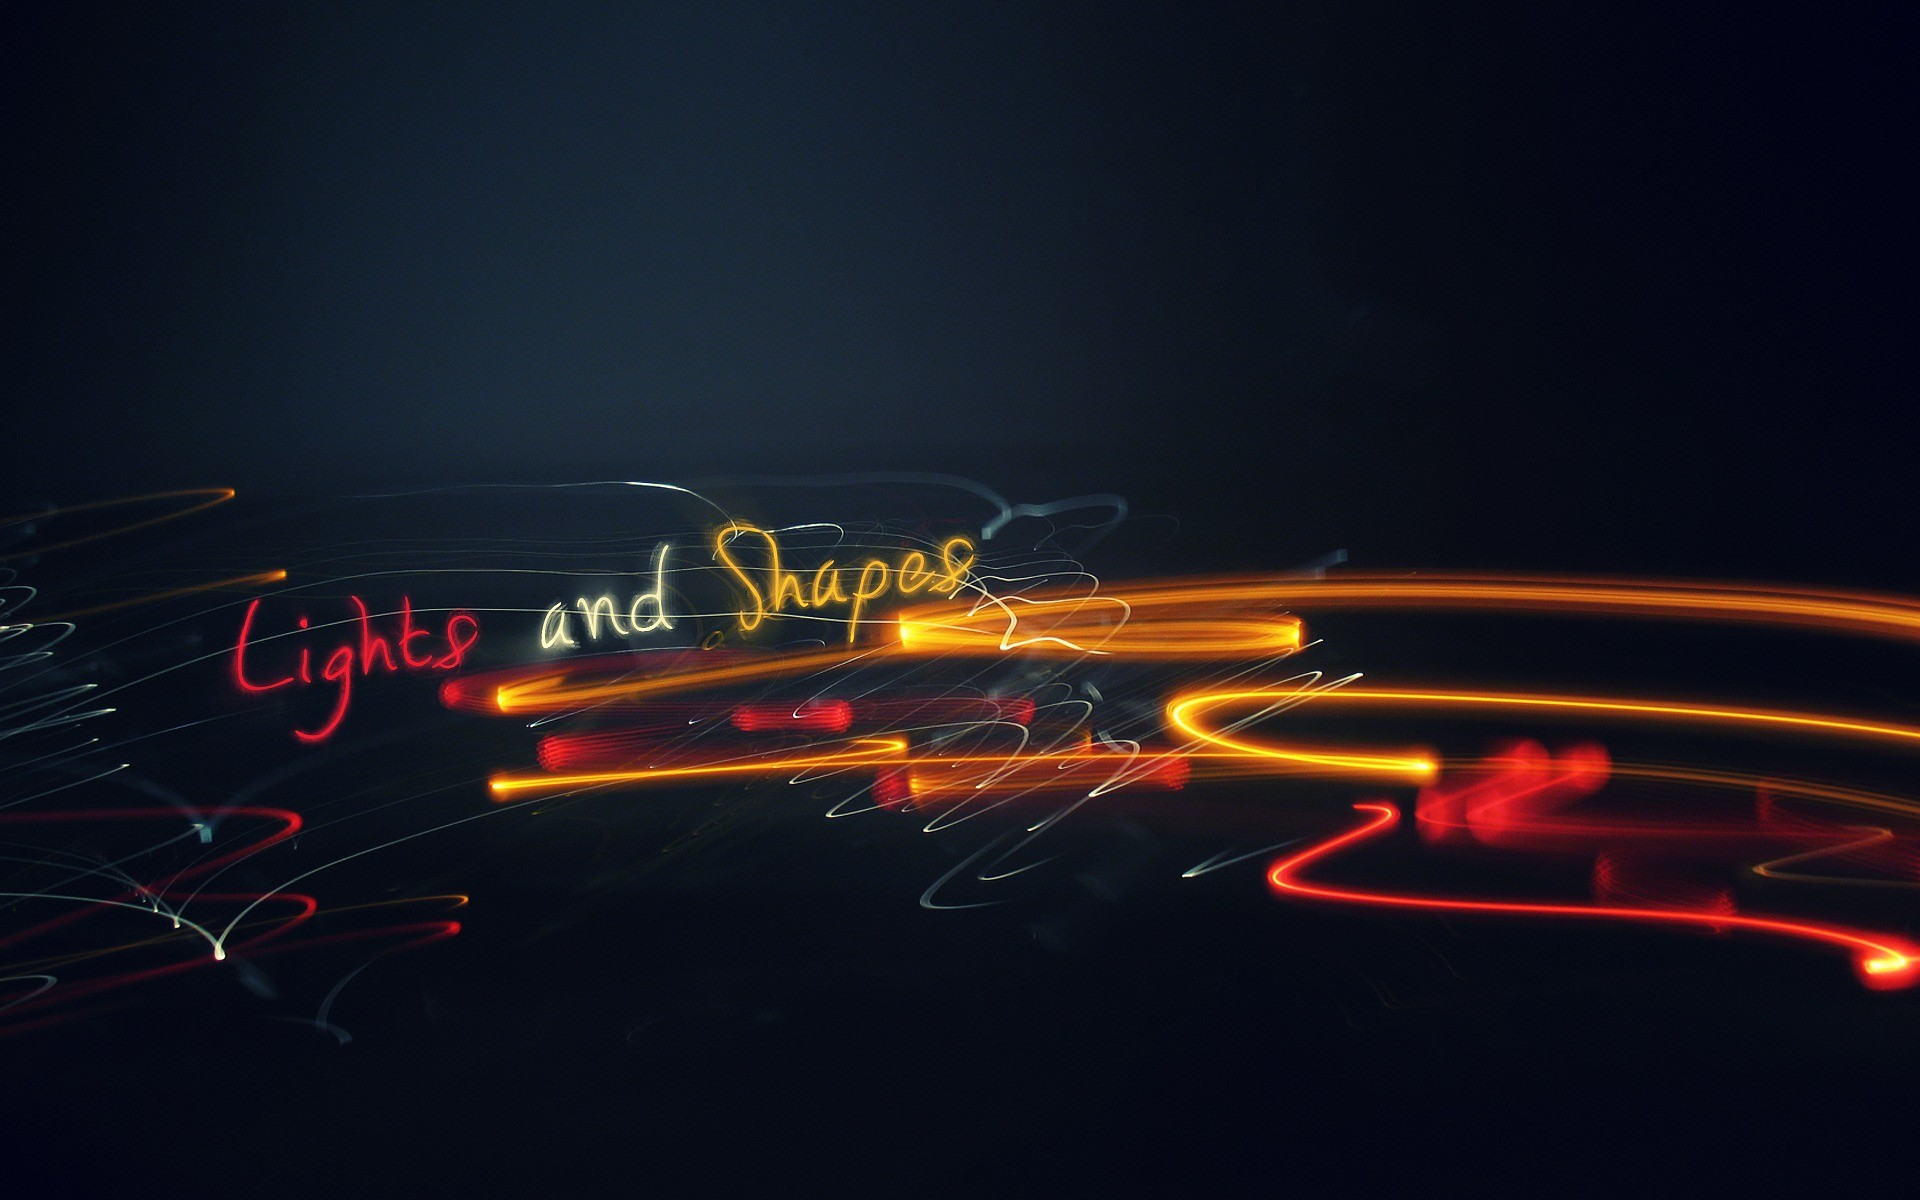 Lights and Shapes Wallpaper Abstract Other